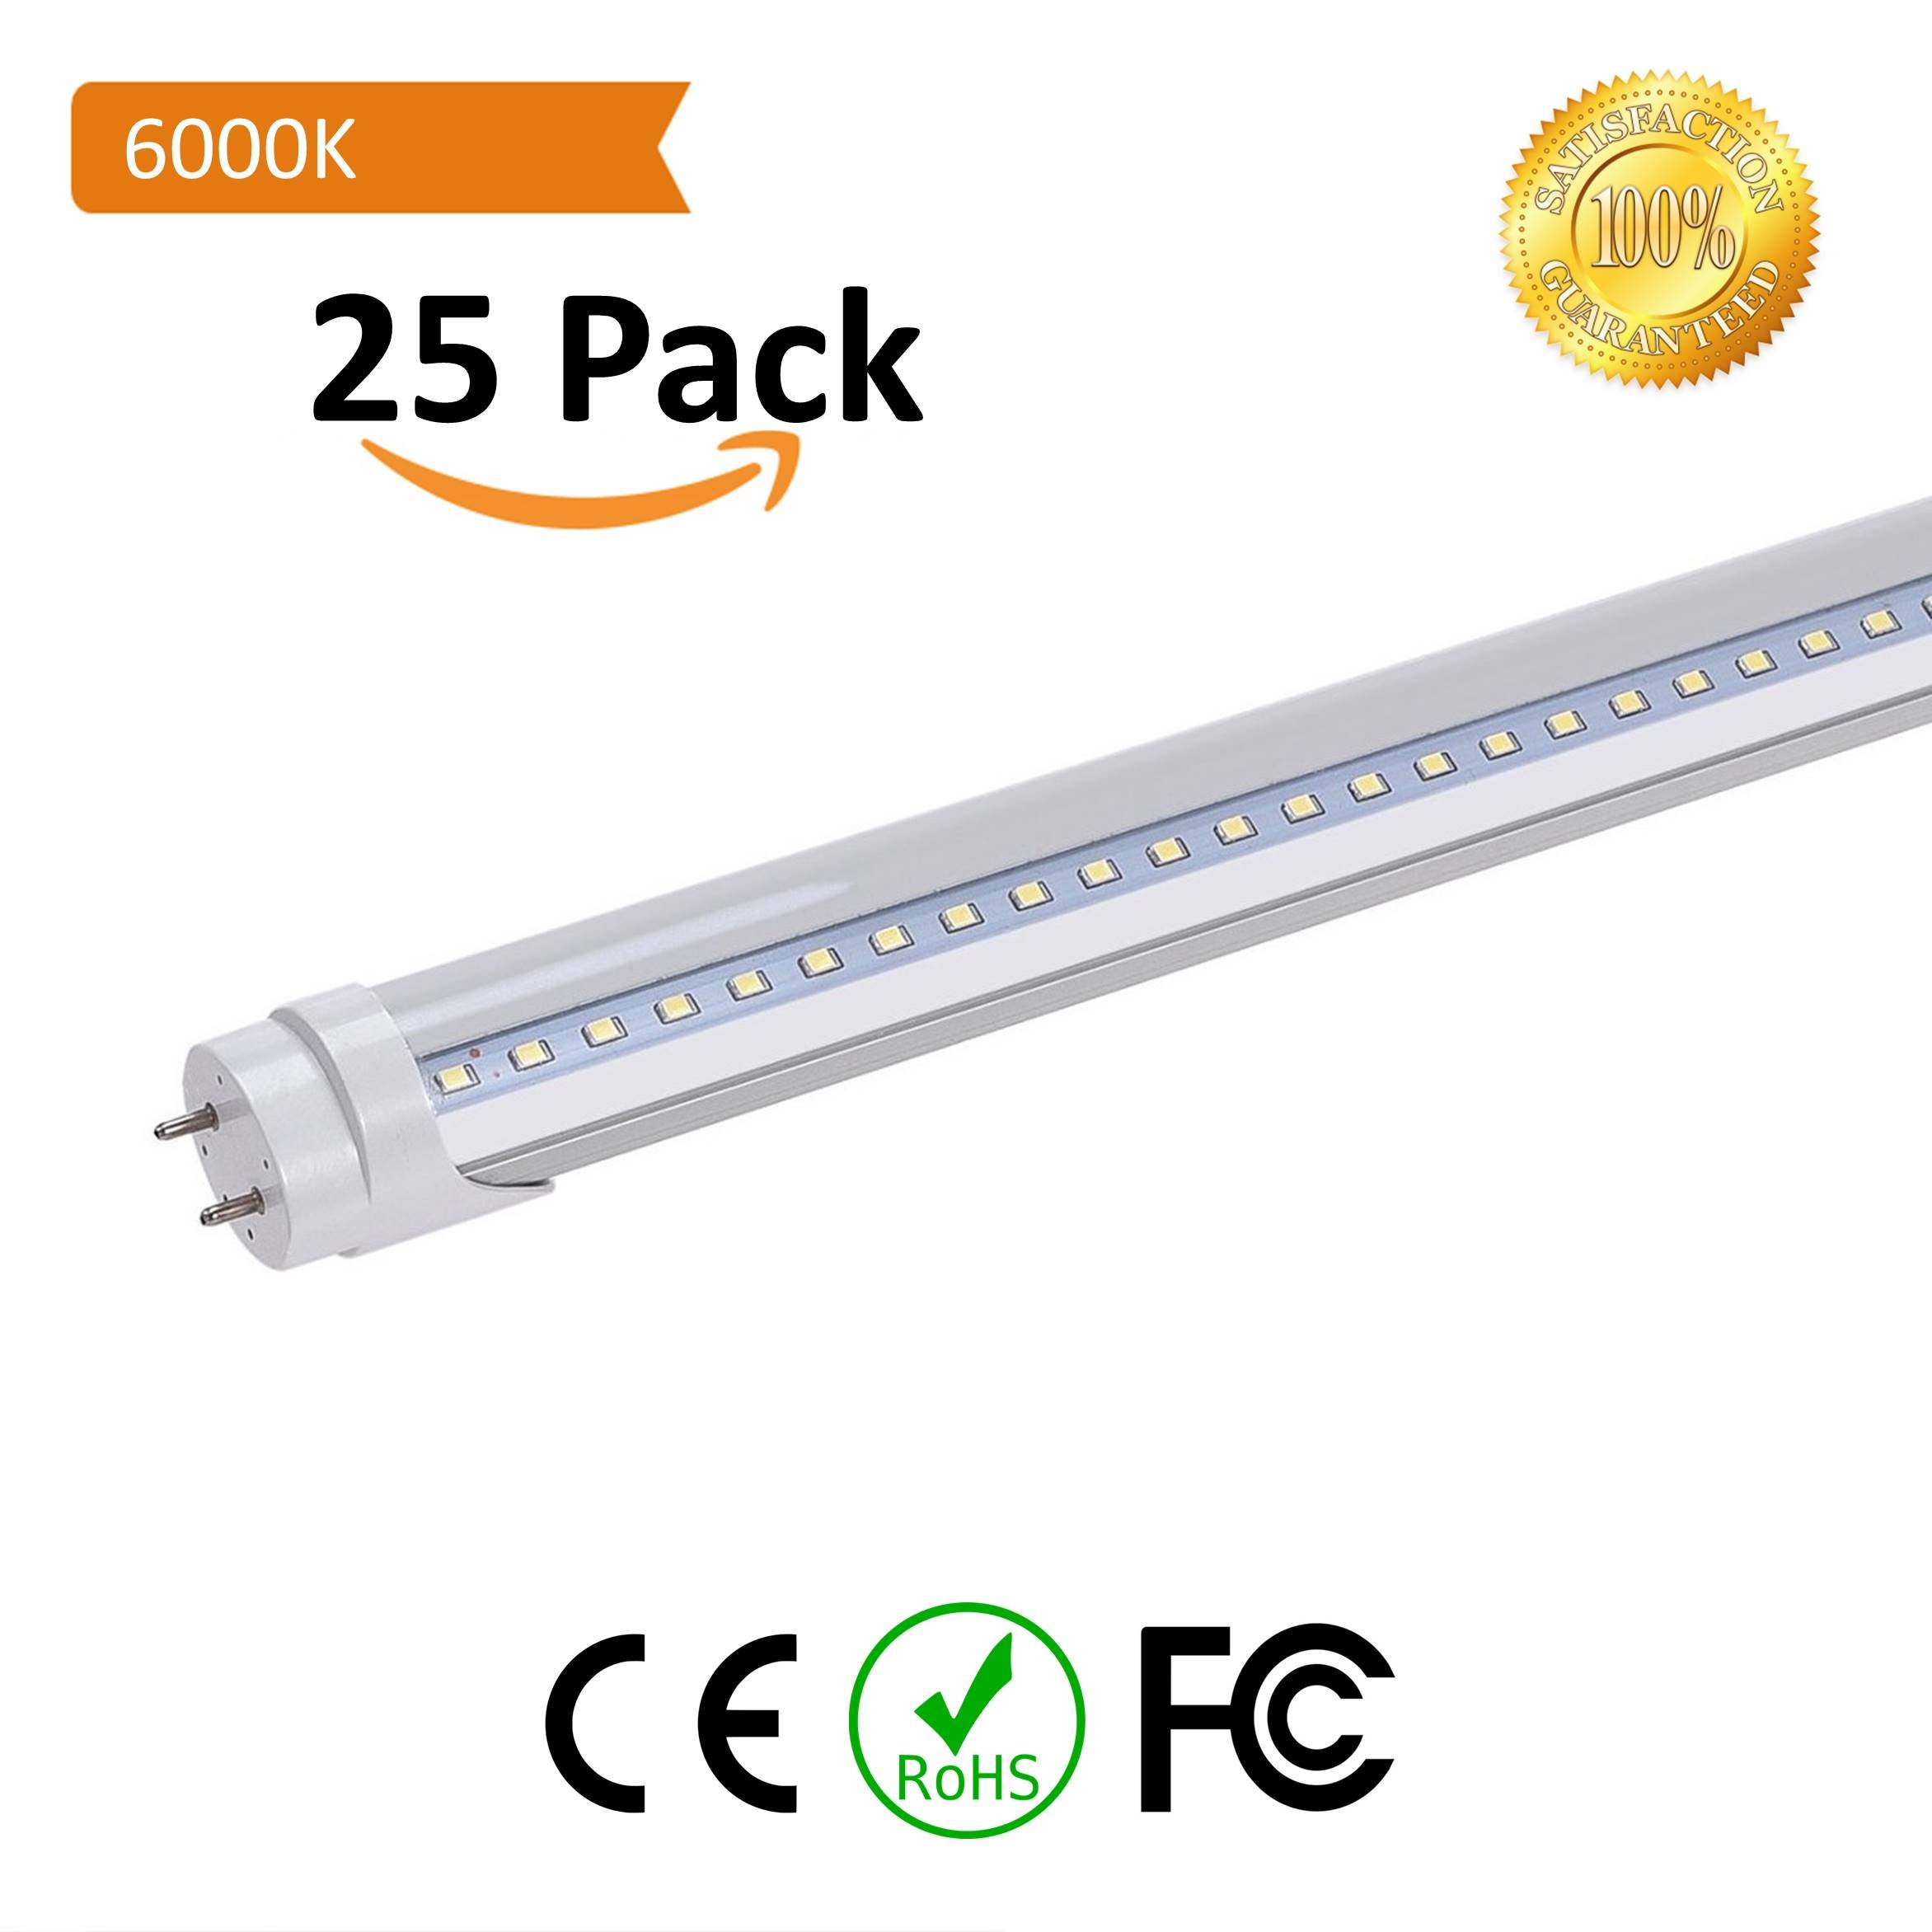 T8 LED Replacement, HouLight 25-Pack, 18W 4-foot T8 LED Light Tube, 6000K, Transparent Cover, Super Bright White, Double End Power